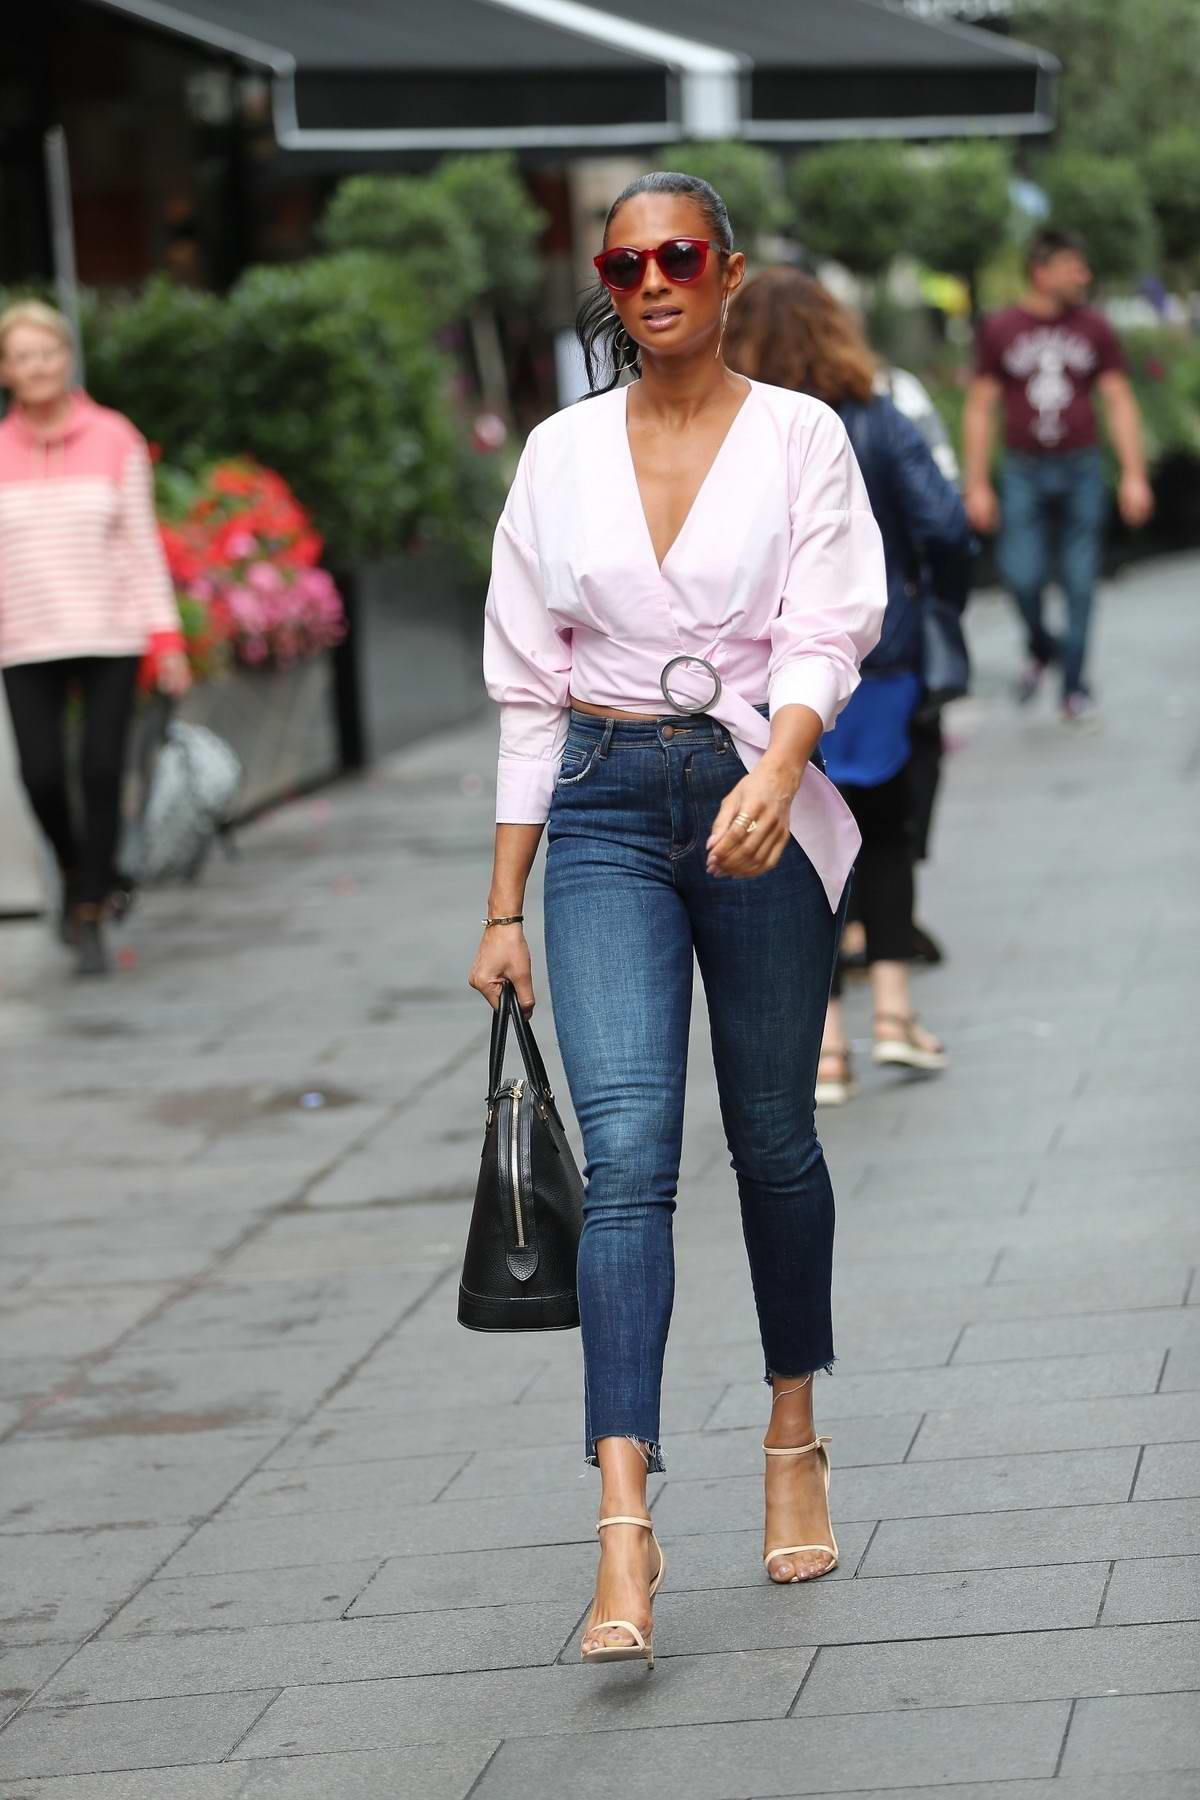 Alesha Dixon leaving the Global Radio in London